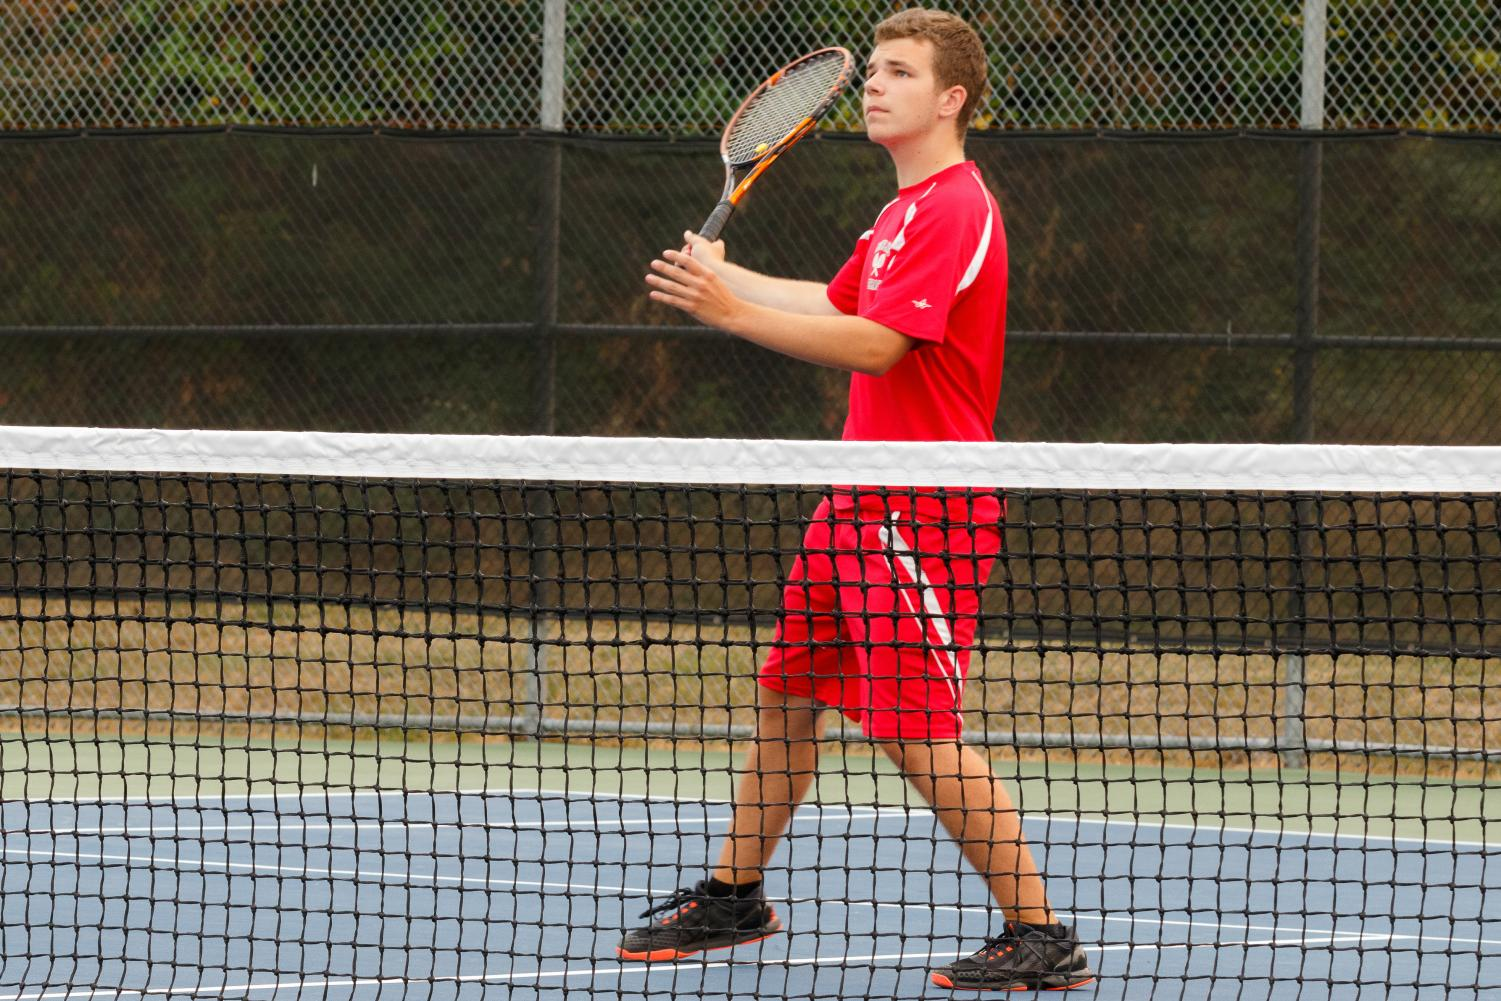 Senior Jake Peters keeps his eye on the ball at tennis practice on the MTHS tennis courts.